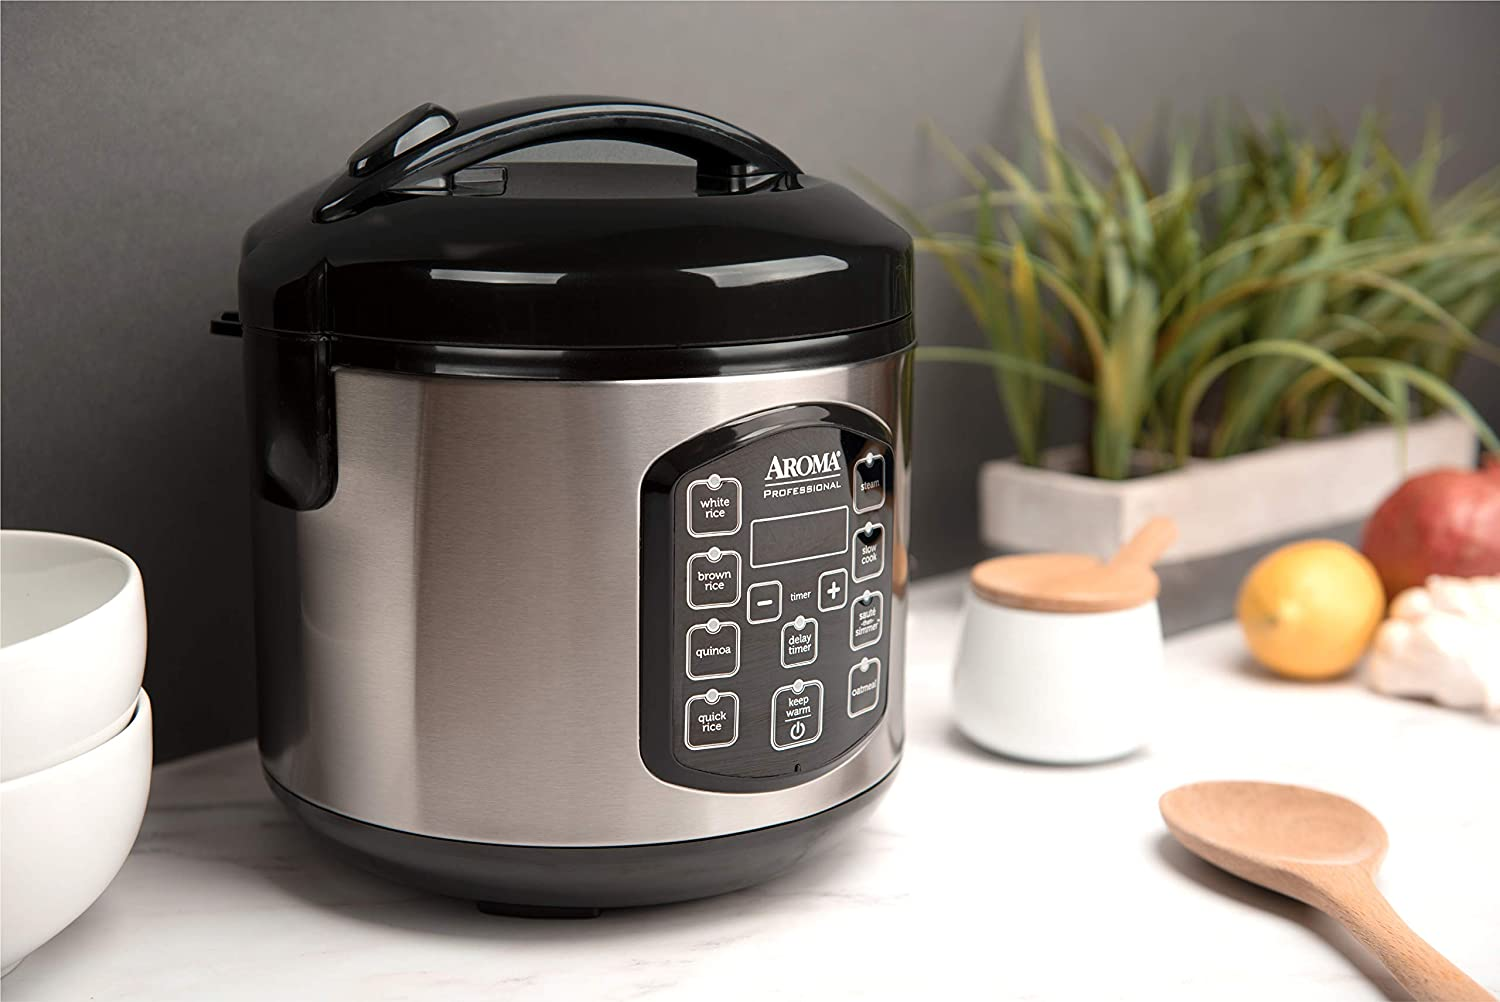 Silver and black rice cooker sitting on a white countertop